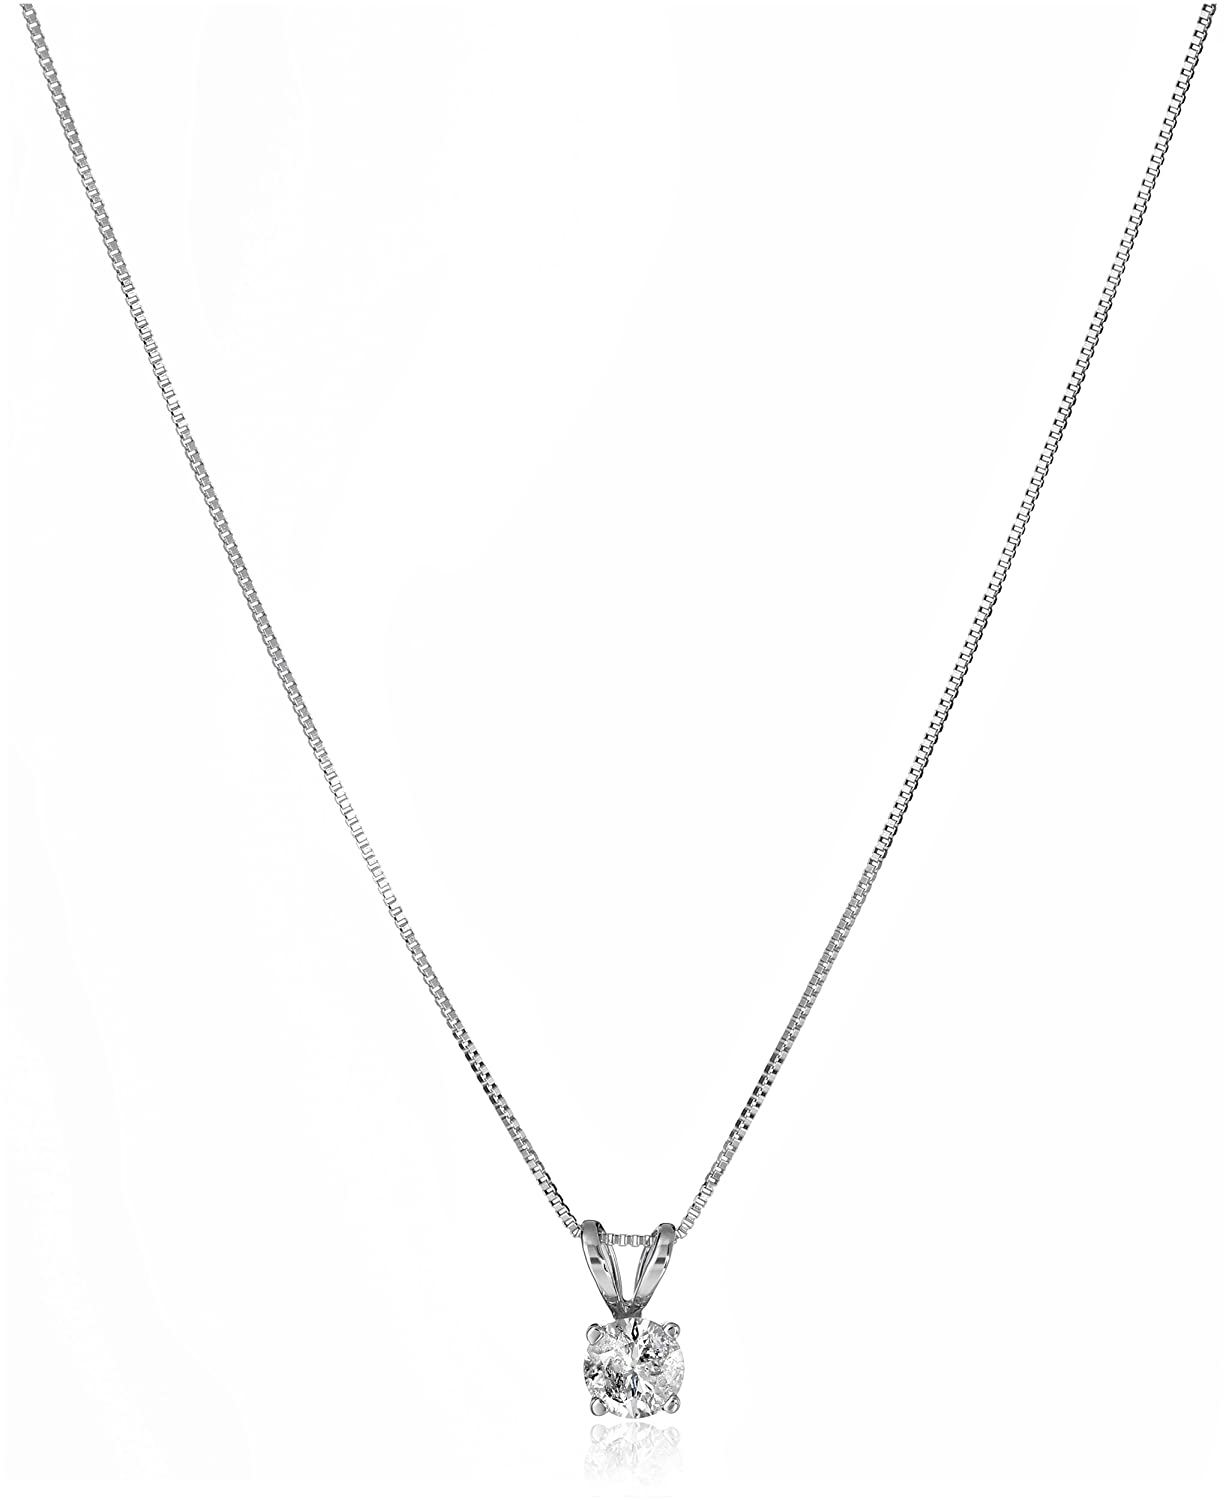 """10k White Gold and Diamond Solitaire Pendant Necklace (1/4 cttw), 18"""""""